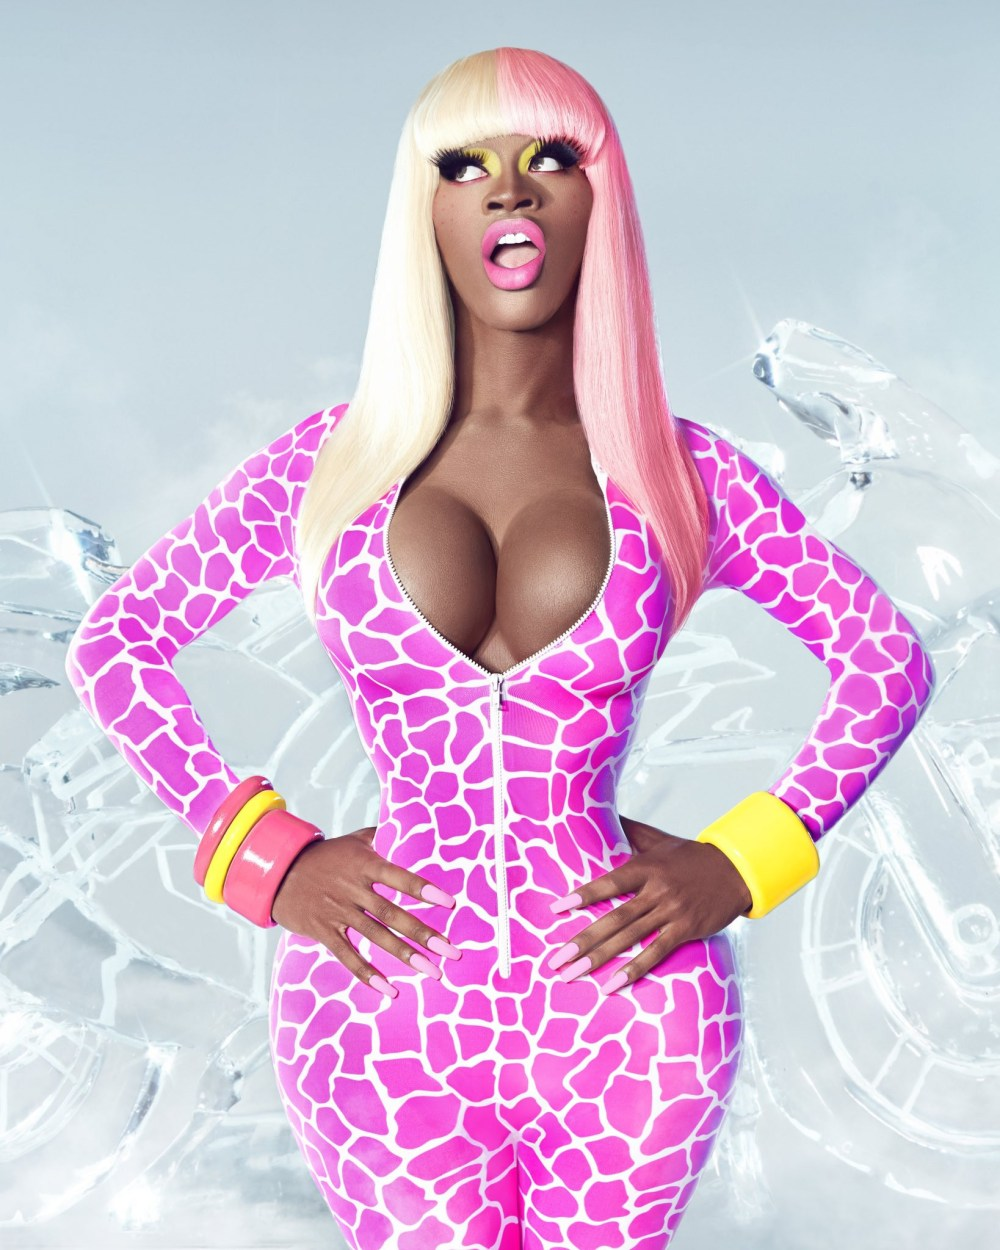 Lil Nas X transforms into Nicki Minaj for Halloween